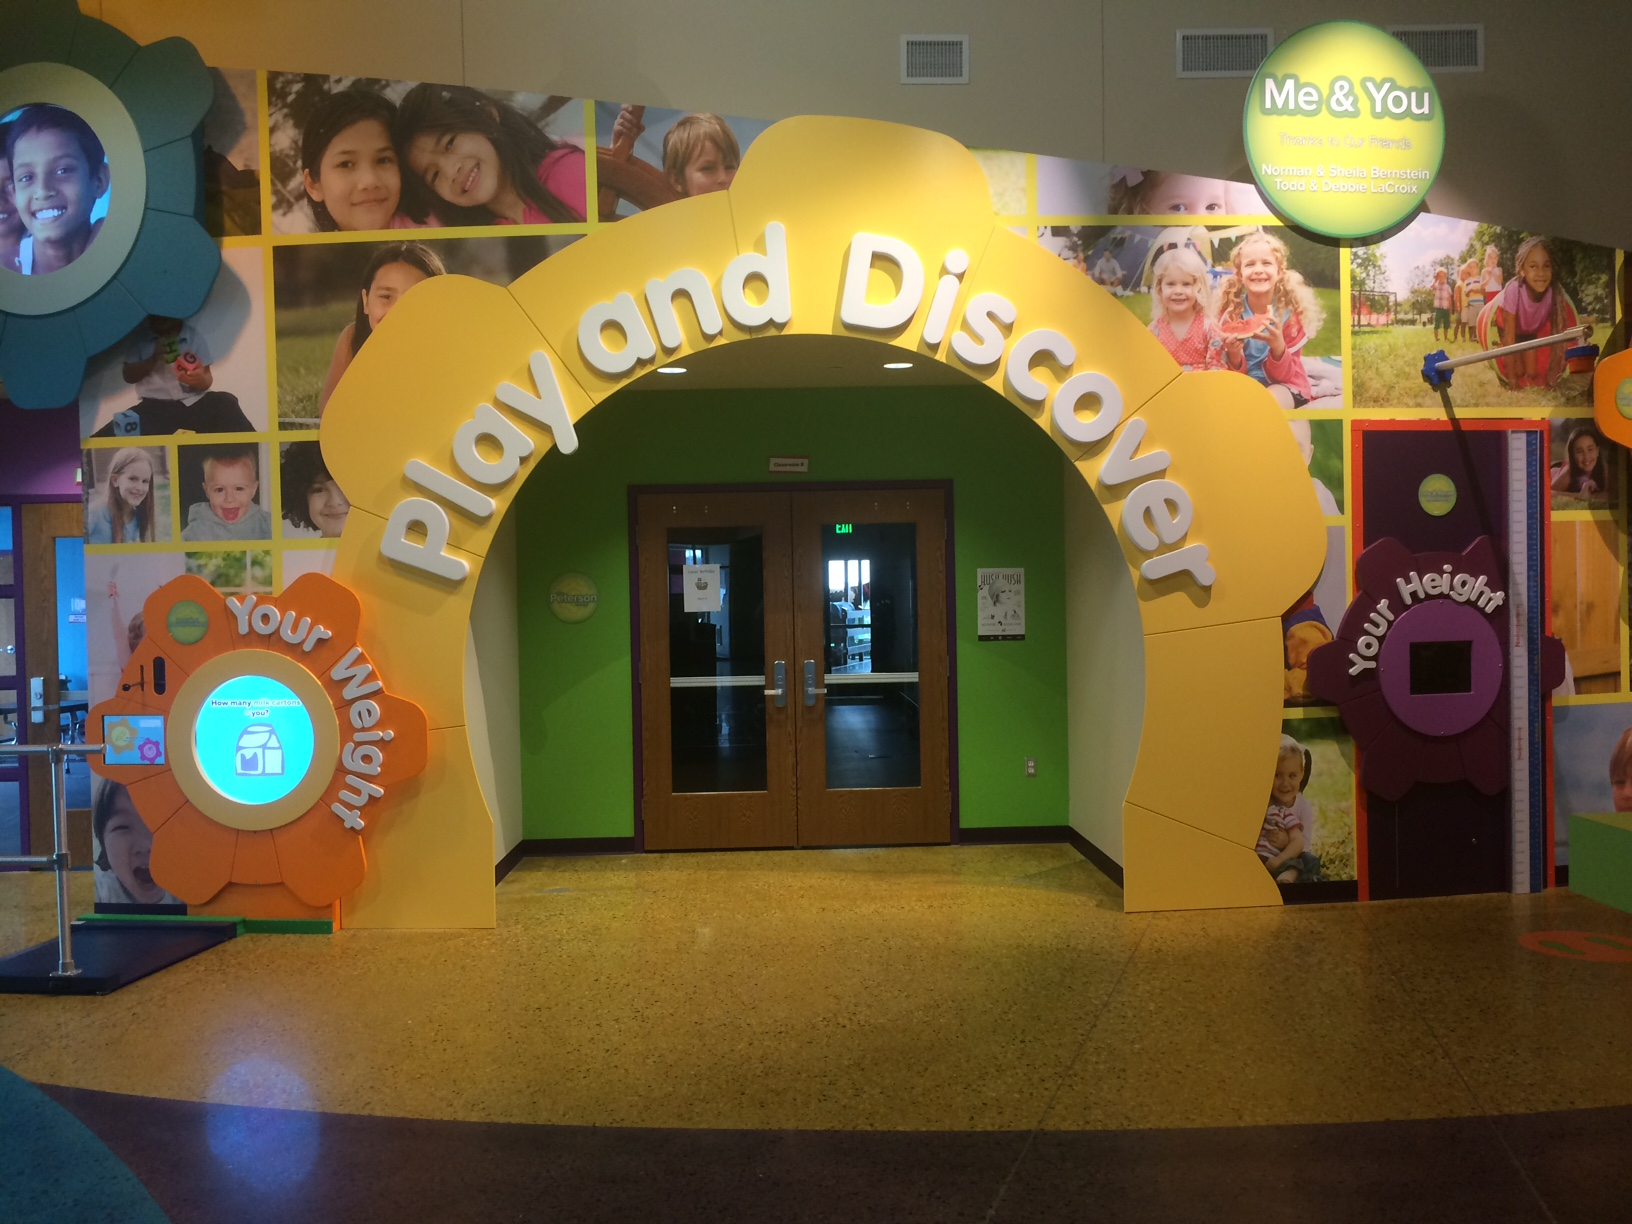 Me & You - Through play in the exhibit components. children will investigate their own personal statistics (height, and weight) plus discover the wealth of diversity within their community.